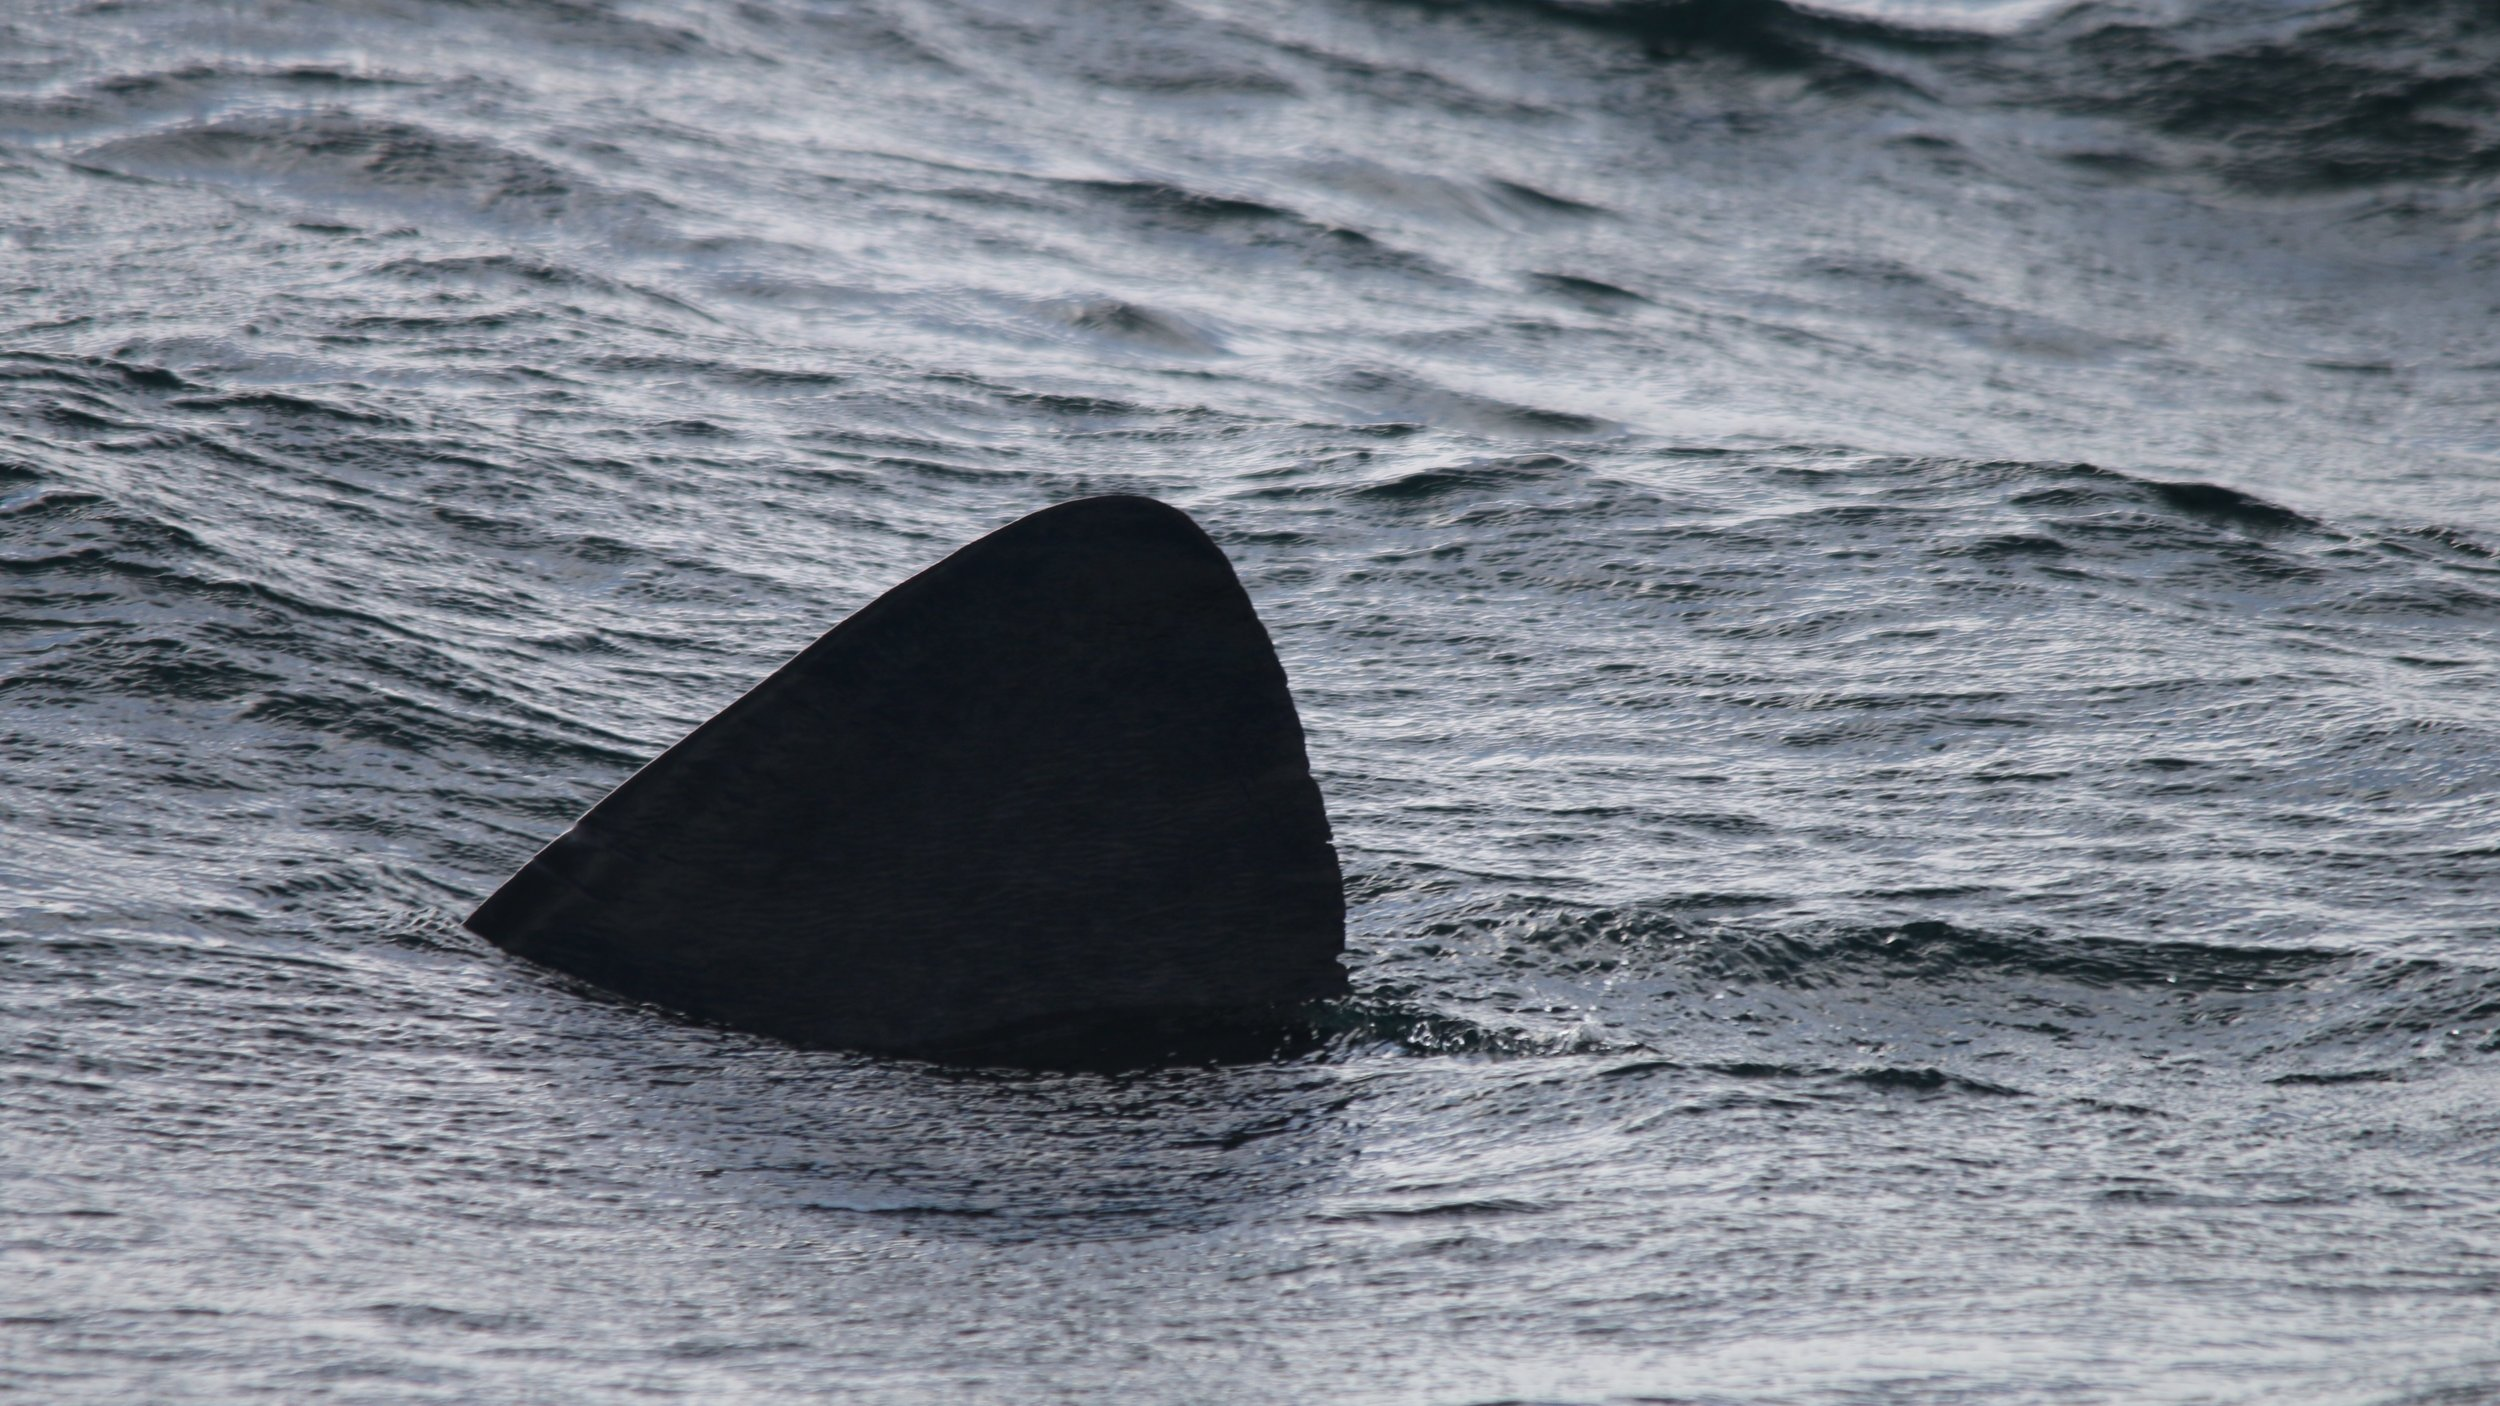 A basking shark, seen on our approach to Rum